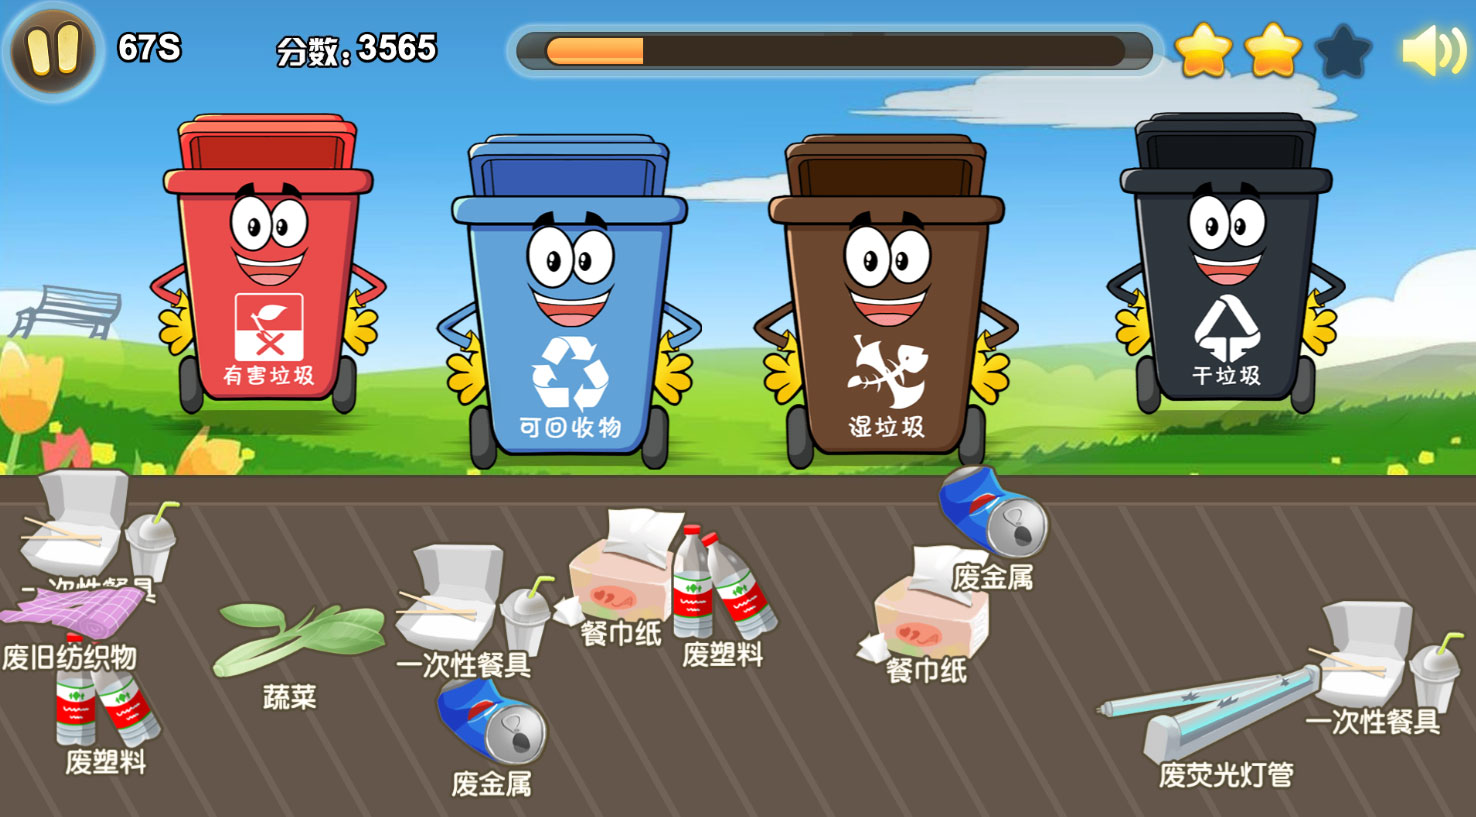 Test Your Garbage Sorting Skills with This Fun Game